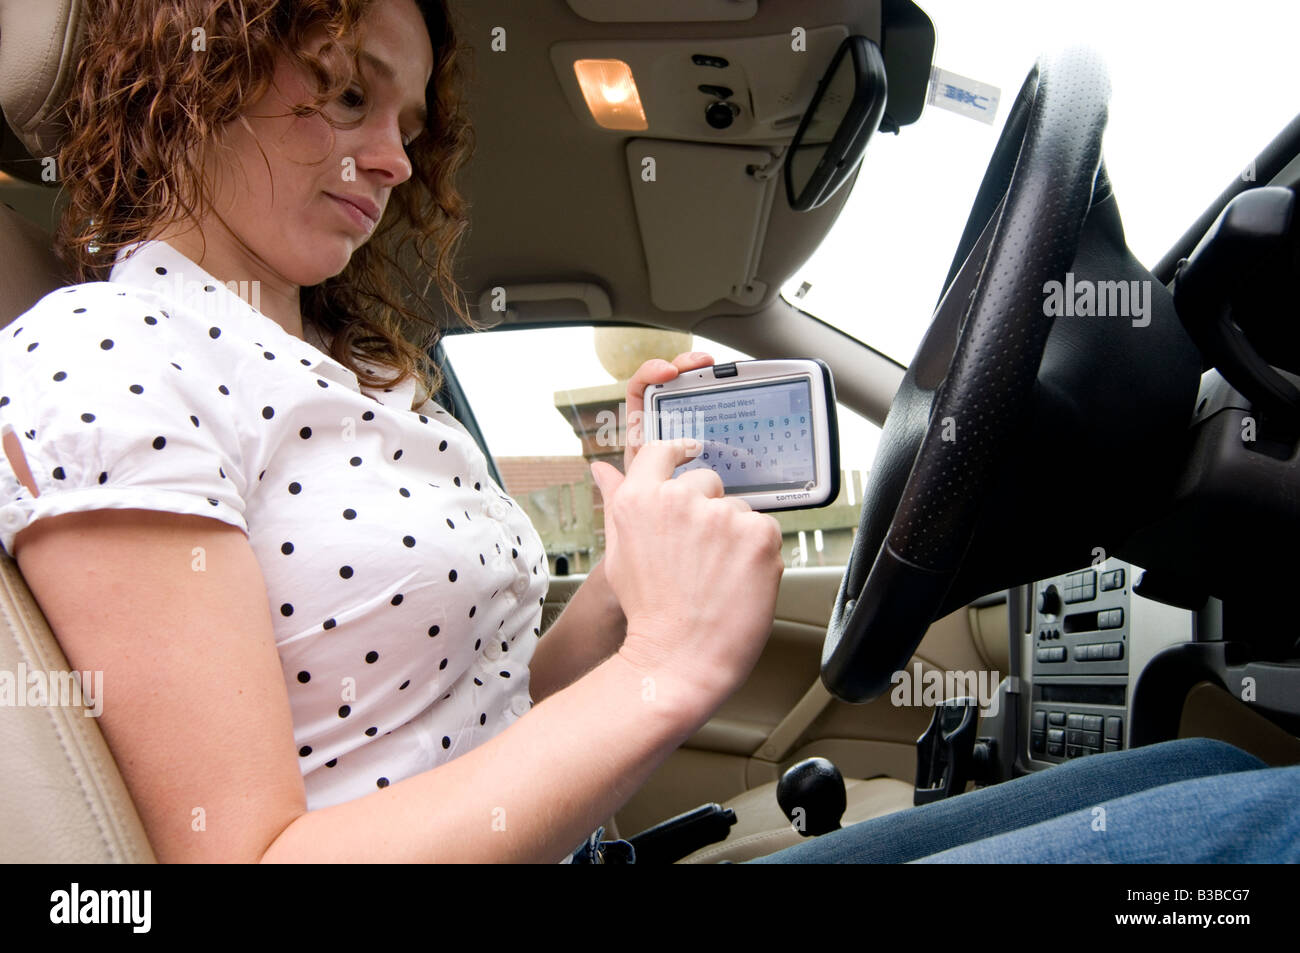 woman using sat nav at wheel of car gps satellite navigation tom tom whilst driving driver cars touch screen directions - Stock Image